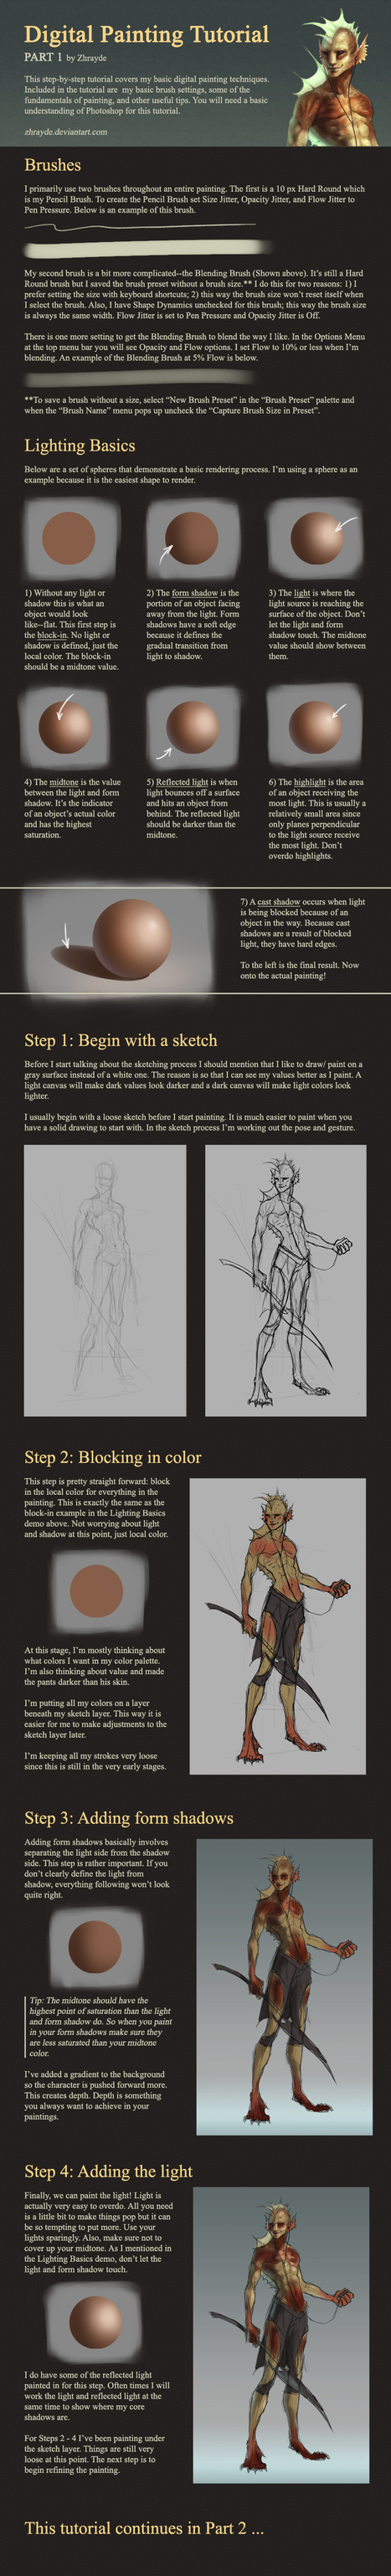 Digital Painting Tutorial - Part 1 | Drawing References and Resources | Scoop.it